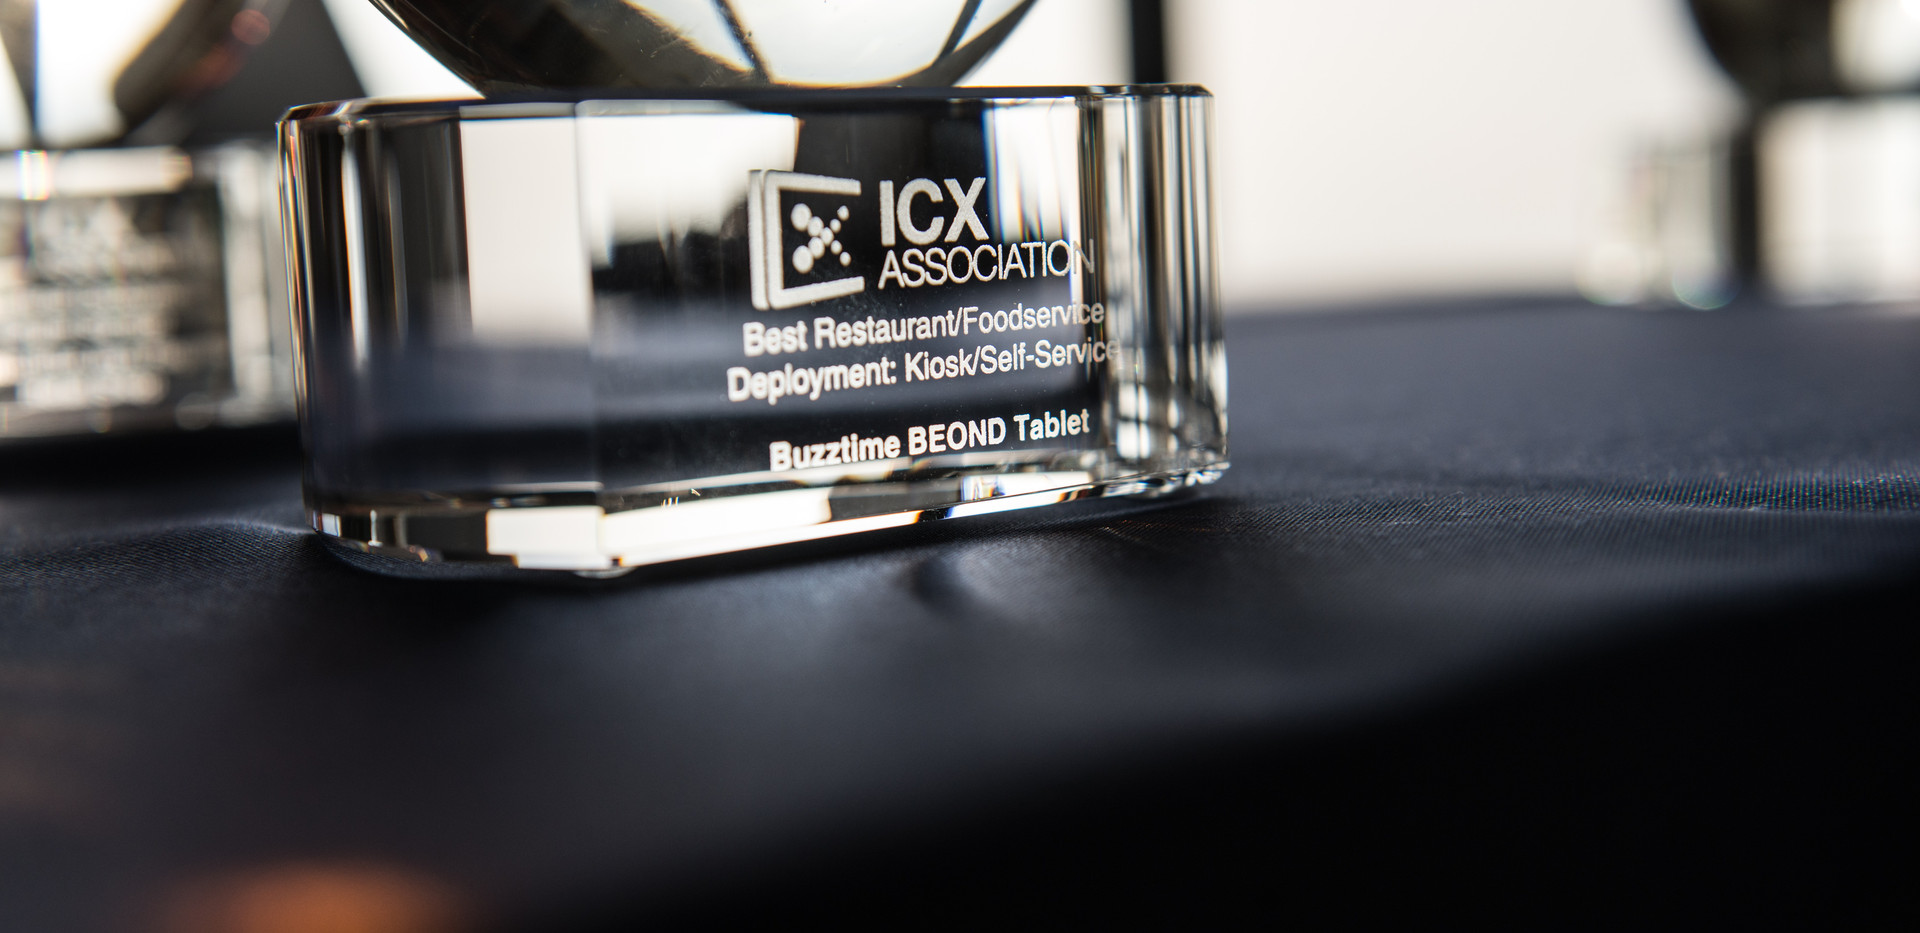 Best New Product Award (ICX)